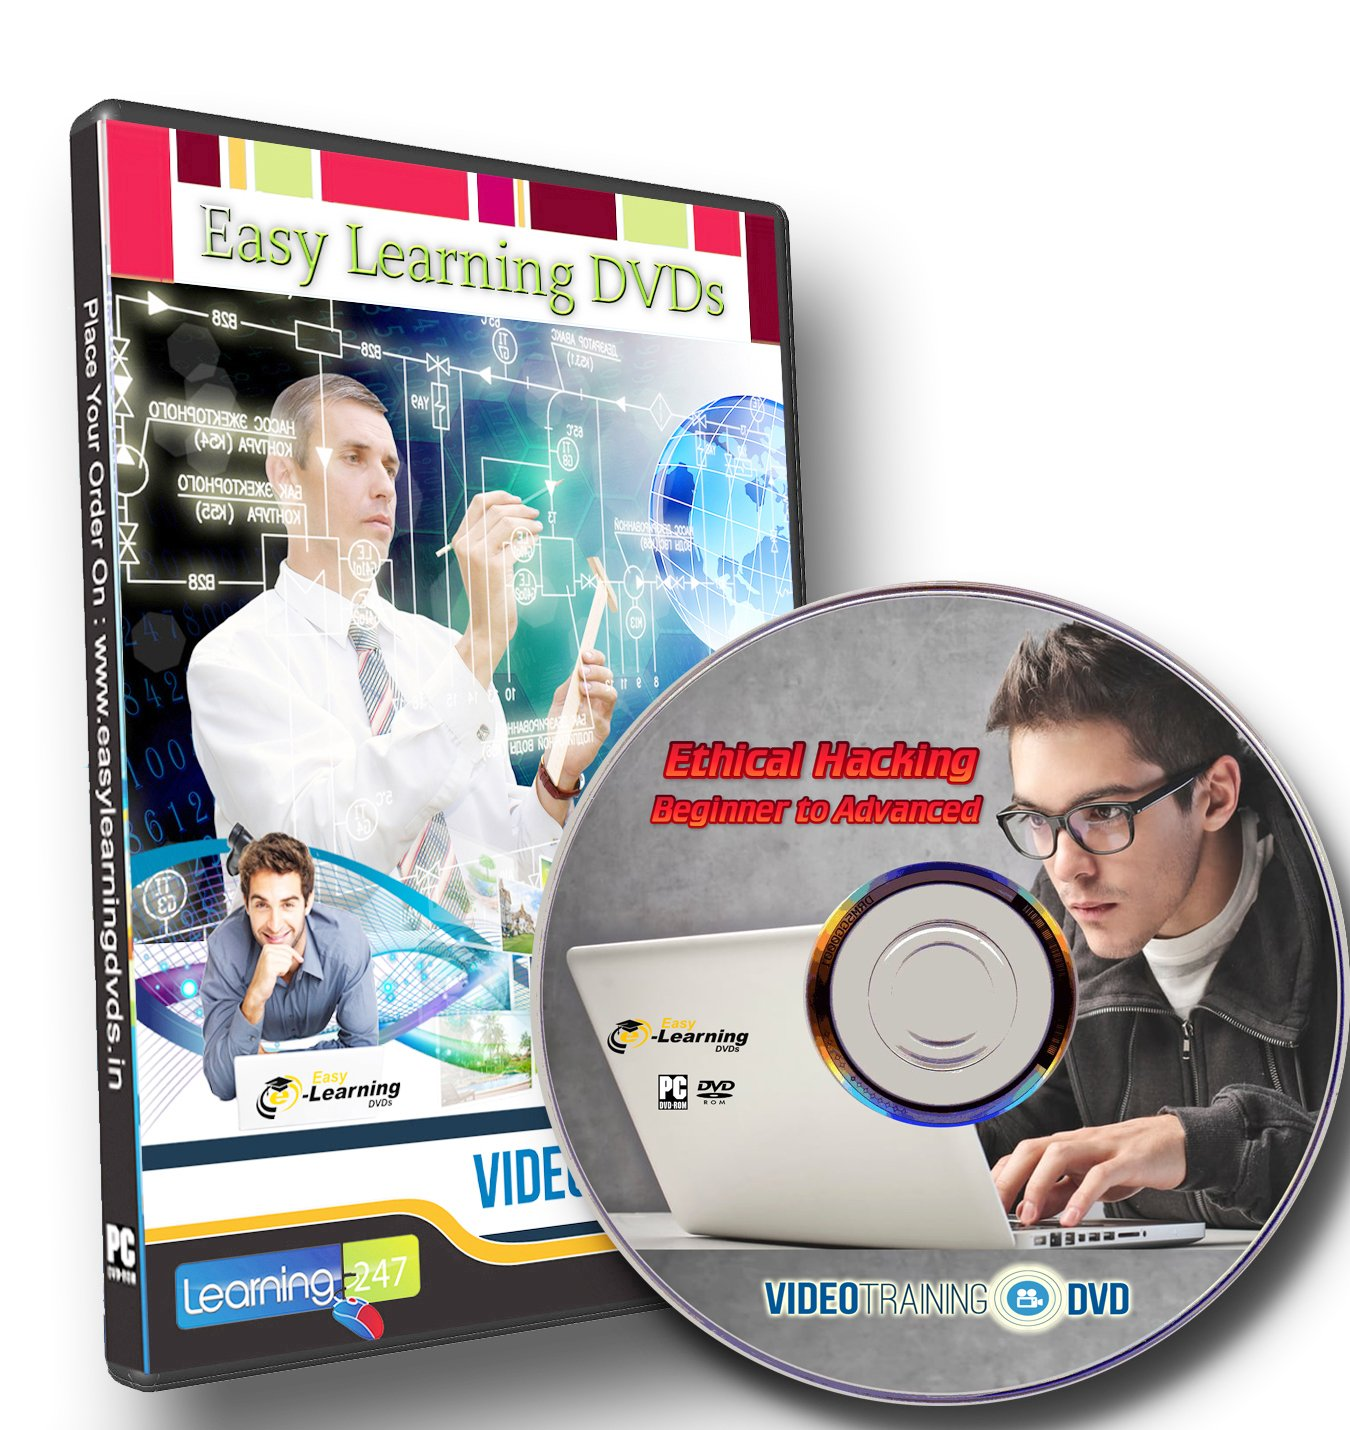 Ethical Hacking Course Beginner to Advanced Video Training DVD